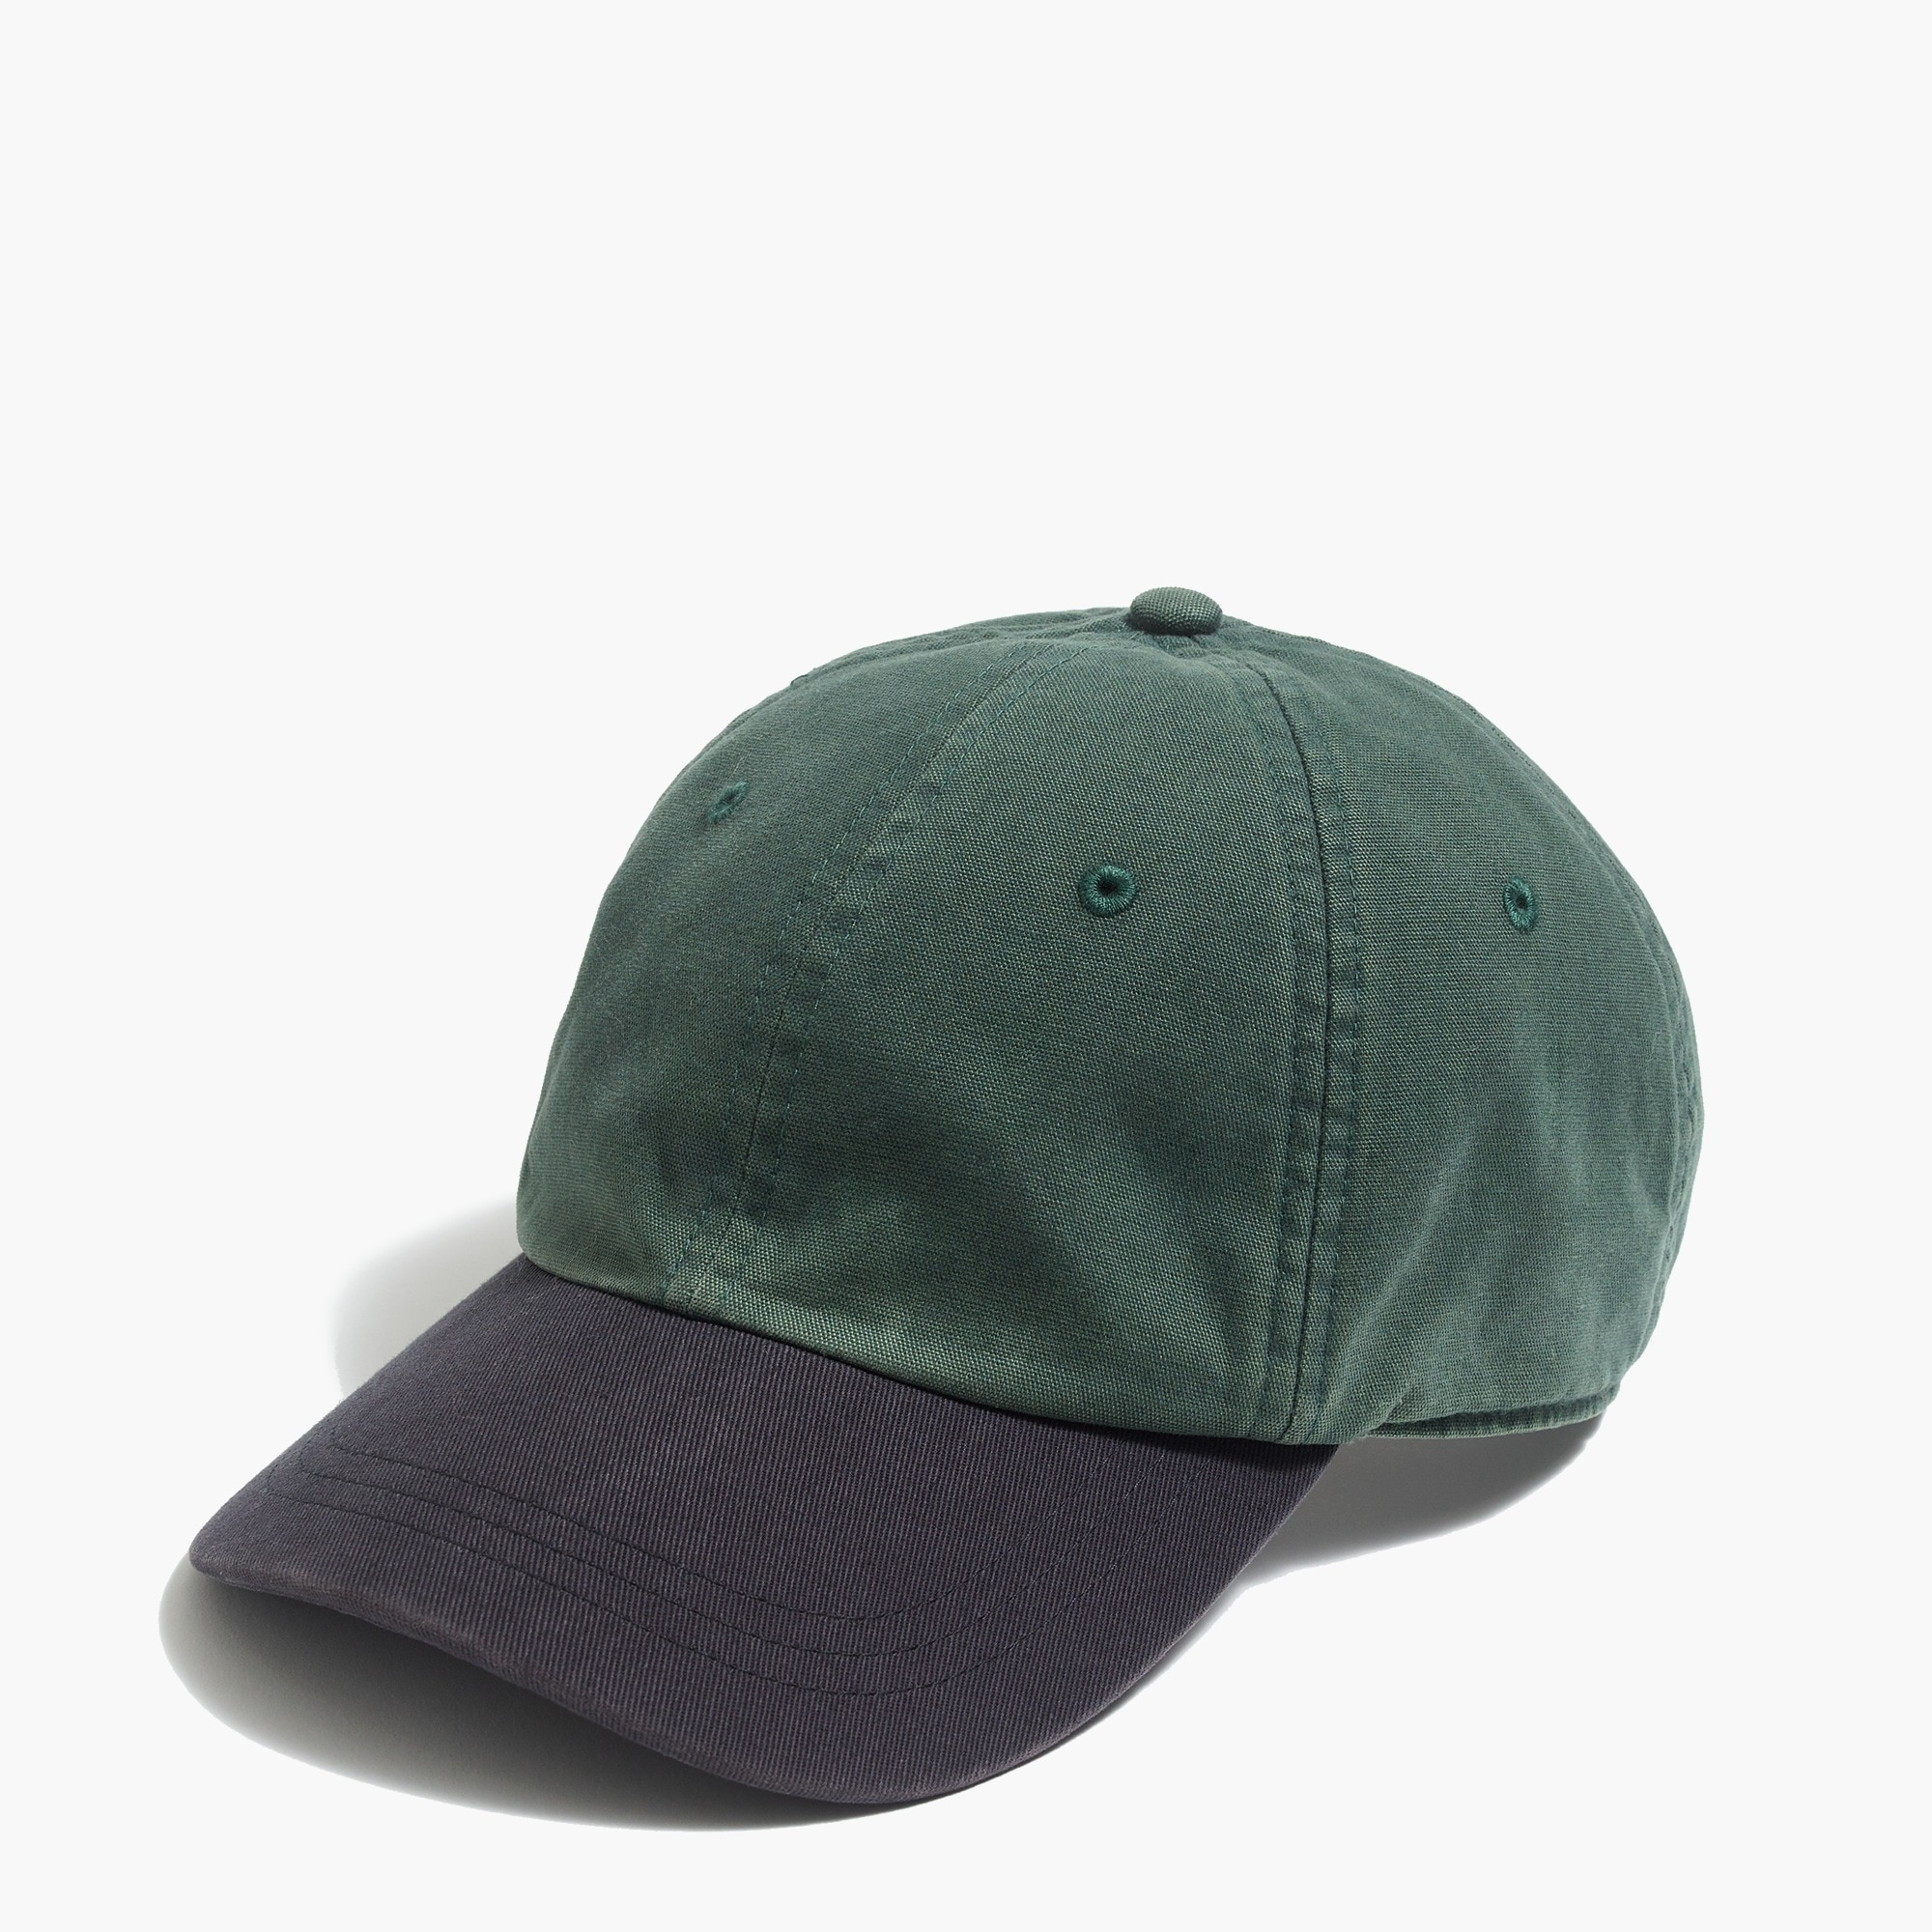 factory mens Colorblock baseball cap